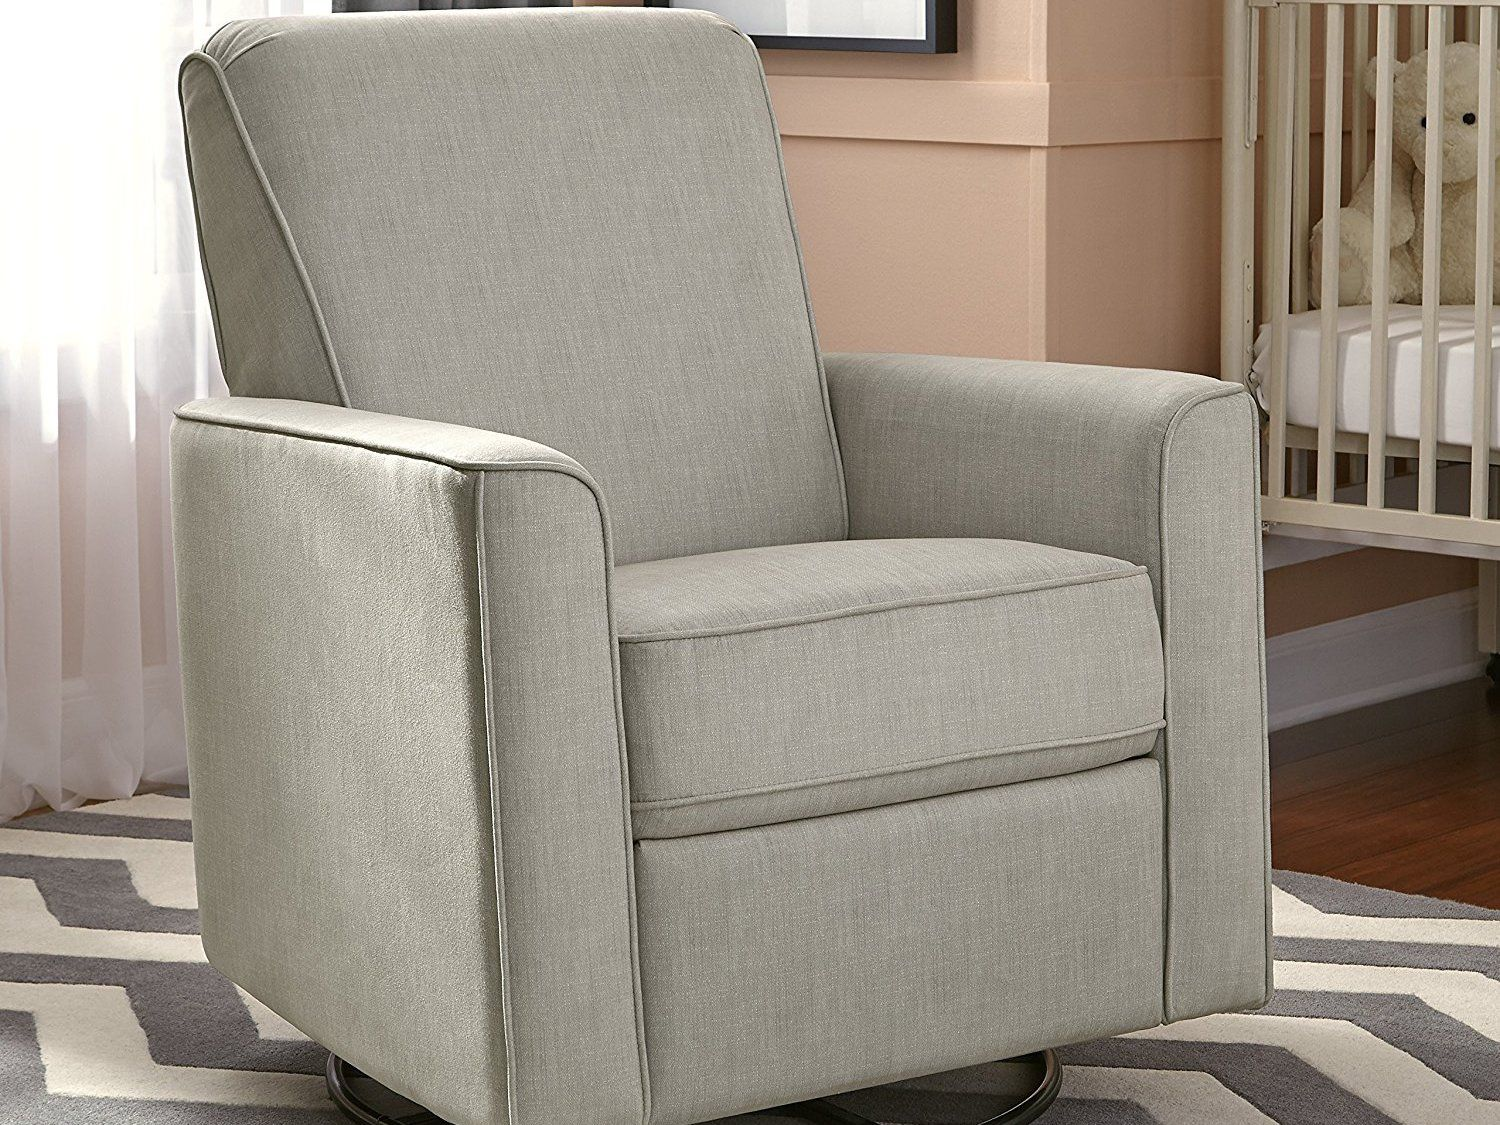 The 8 best budget recliners of 2019